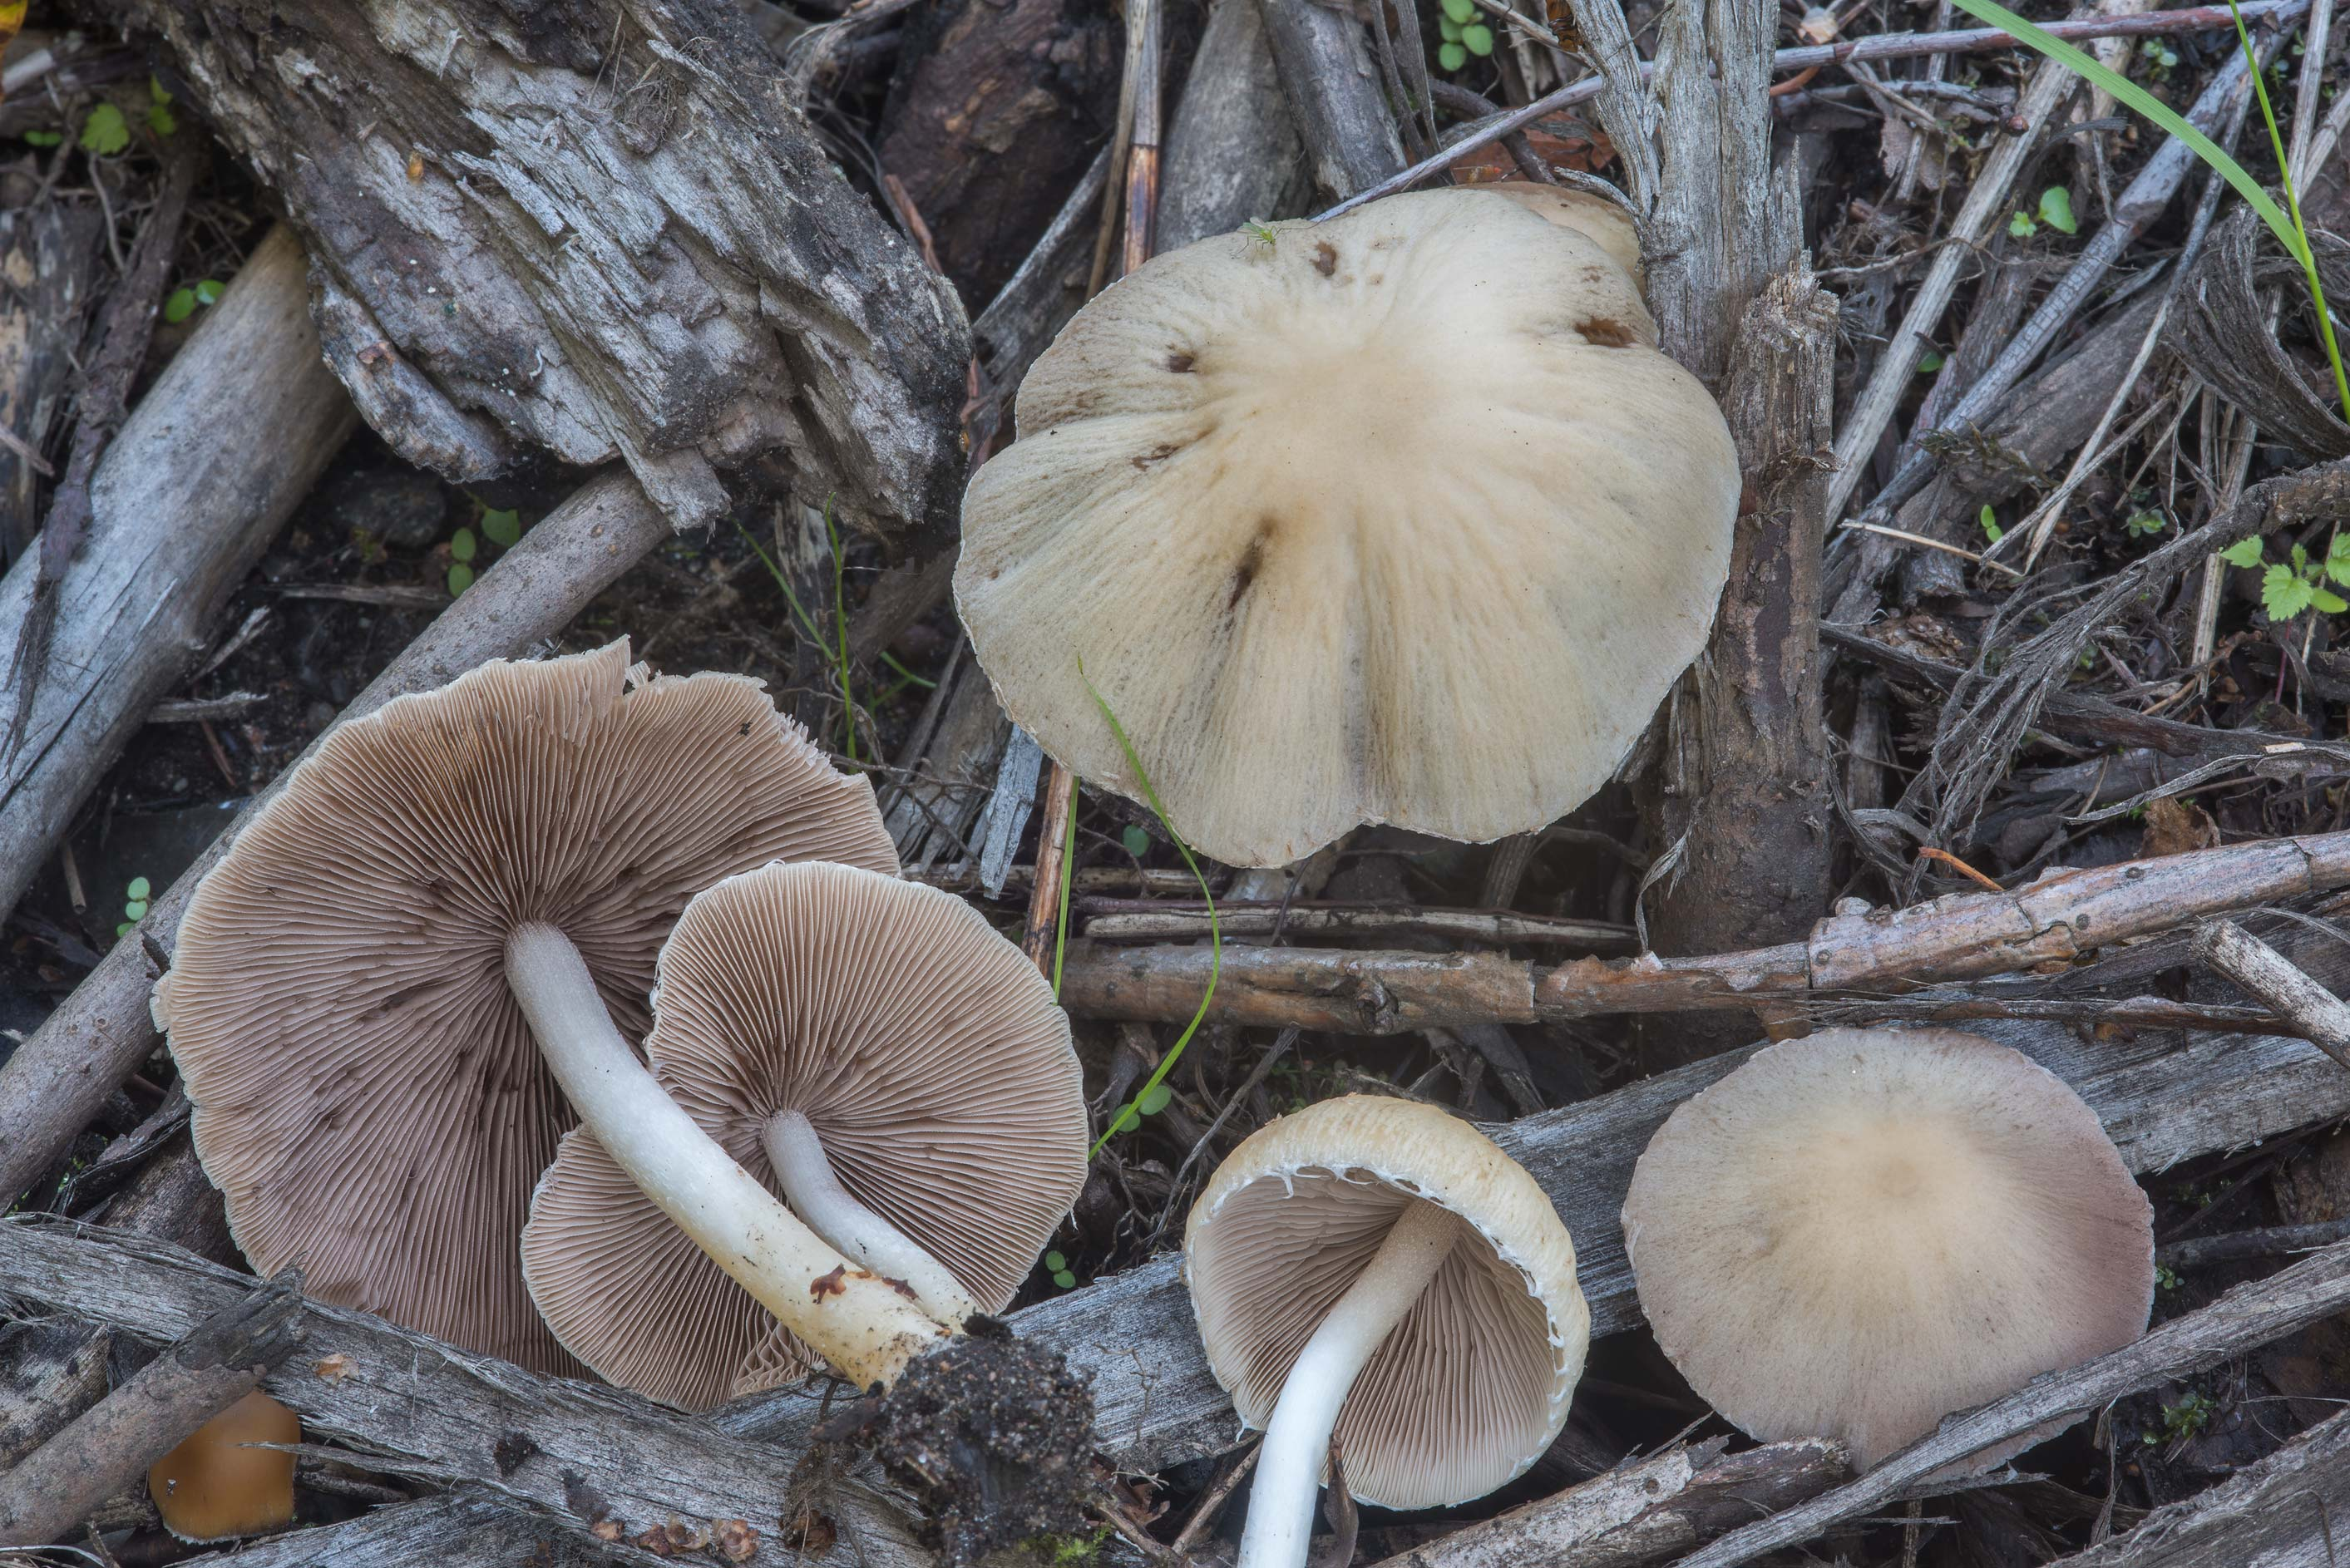 Large pale brittlestem mushrooms (Psathyrella...west from St.Petersburg. Russia